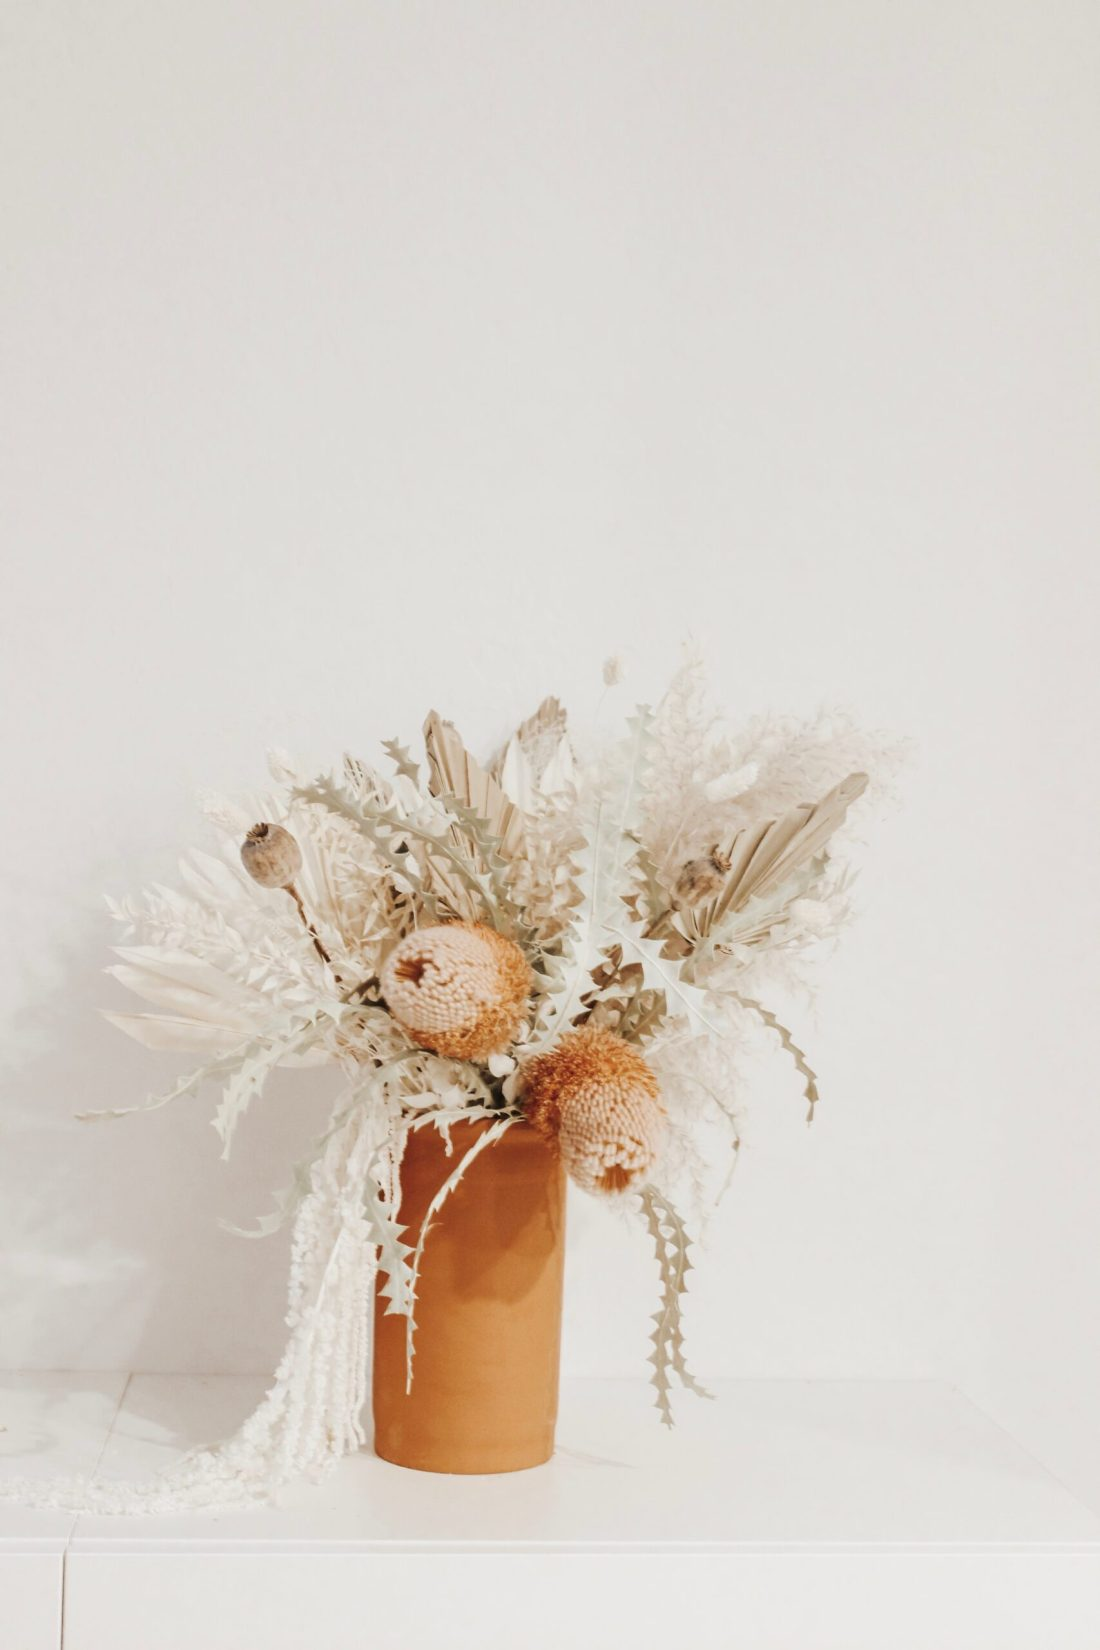 Where to find flowers for dried flower arrangements and the best flowers to choose.  Pampas grass flower arrangements || Darling Darleen Top Lifestyle Connecticut Blogger #driedflowers